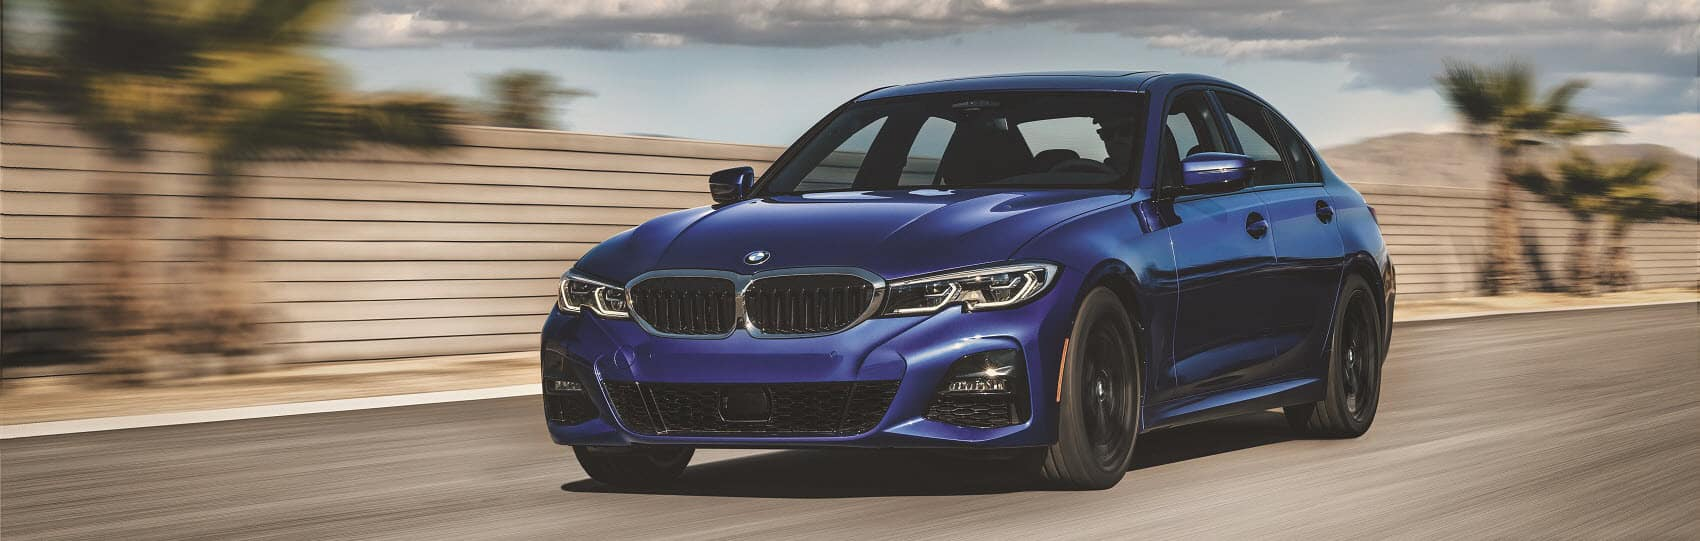 Bmw Dealer Near Me >> Pre Owned Car Dealer Near Me Bmw Of Annapolis